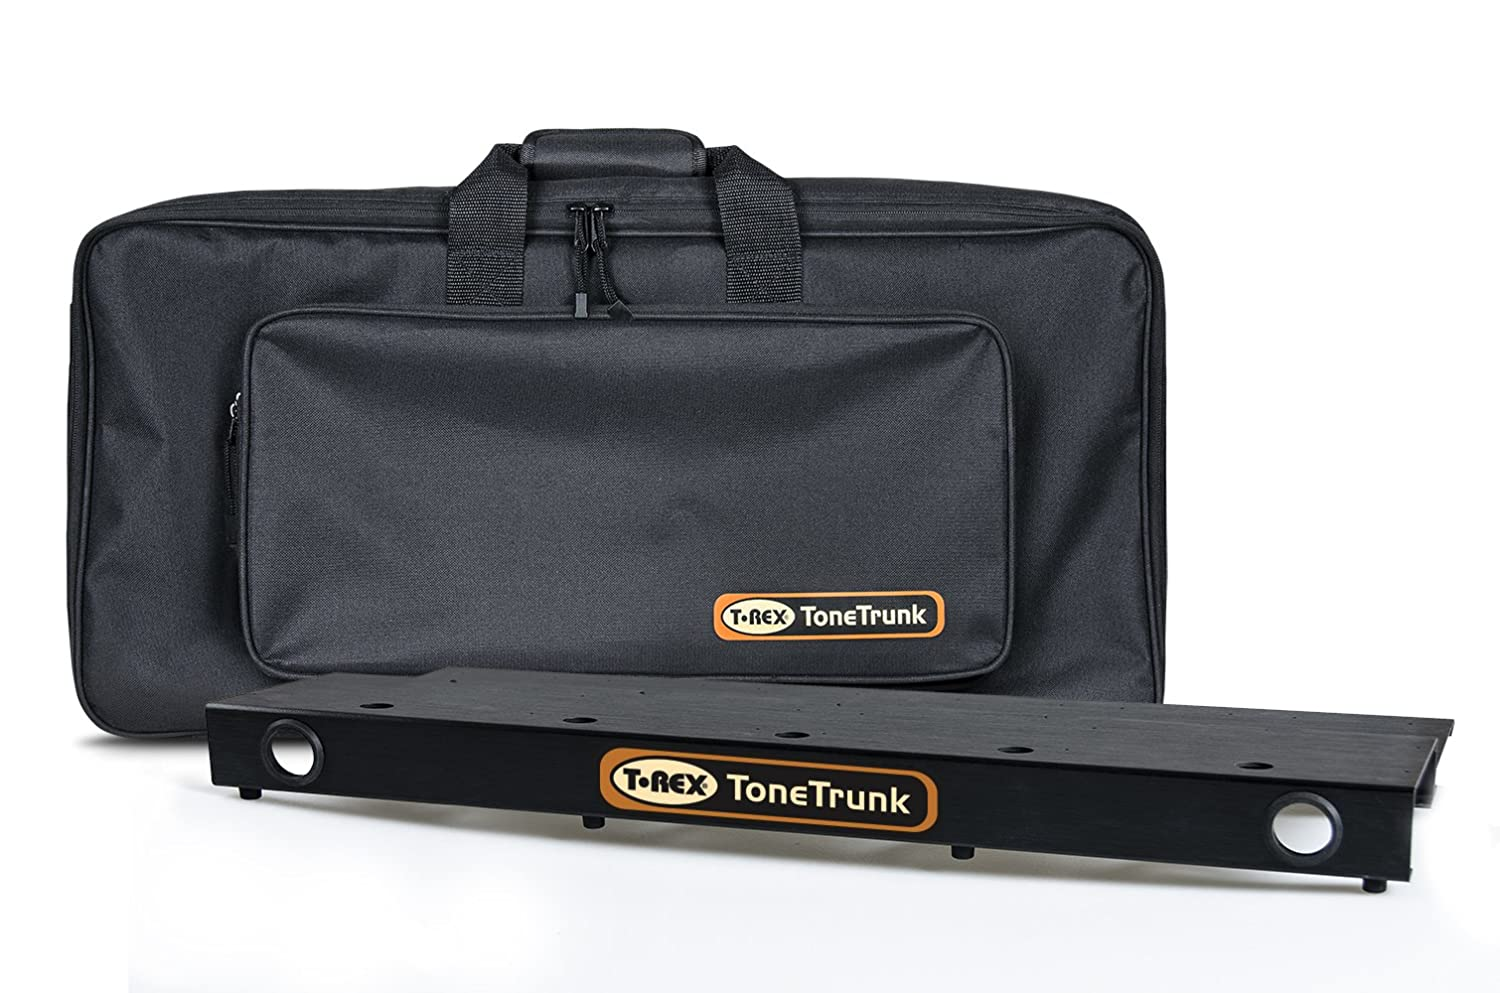 T-Rex Engineering TONETRUNK-70 Pedal Board with 31.6 by 70cm Gigbag TT-BAG-70